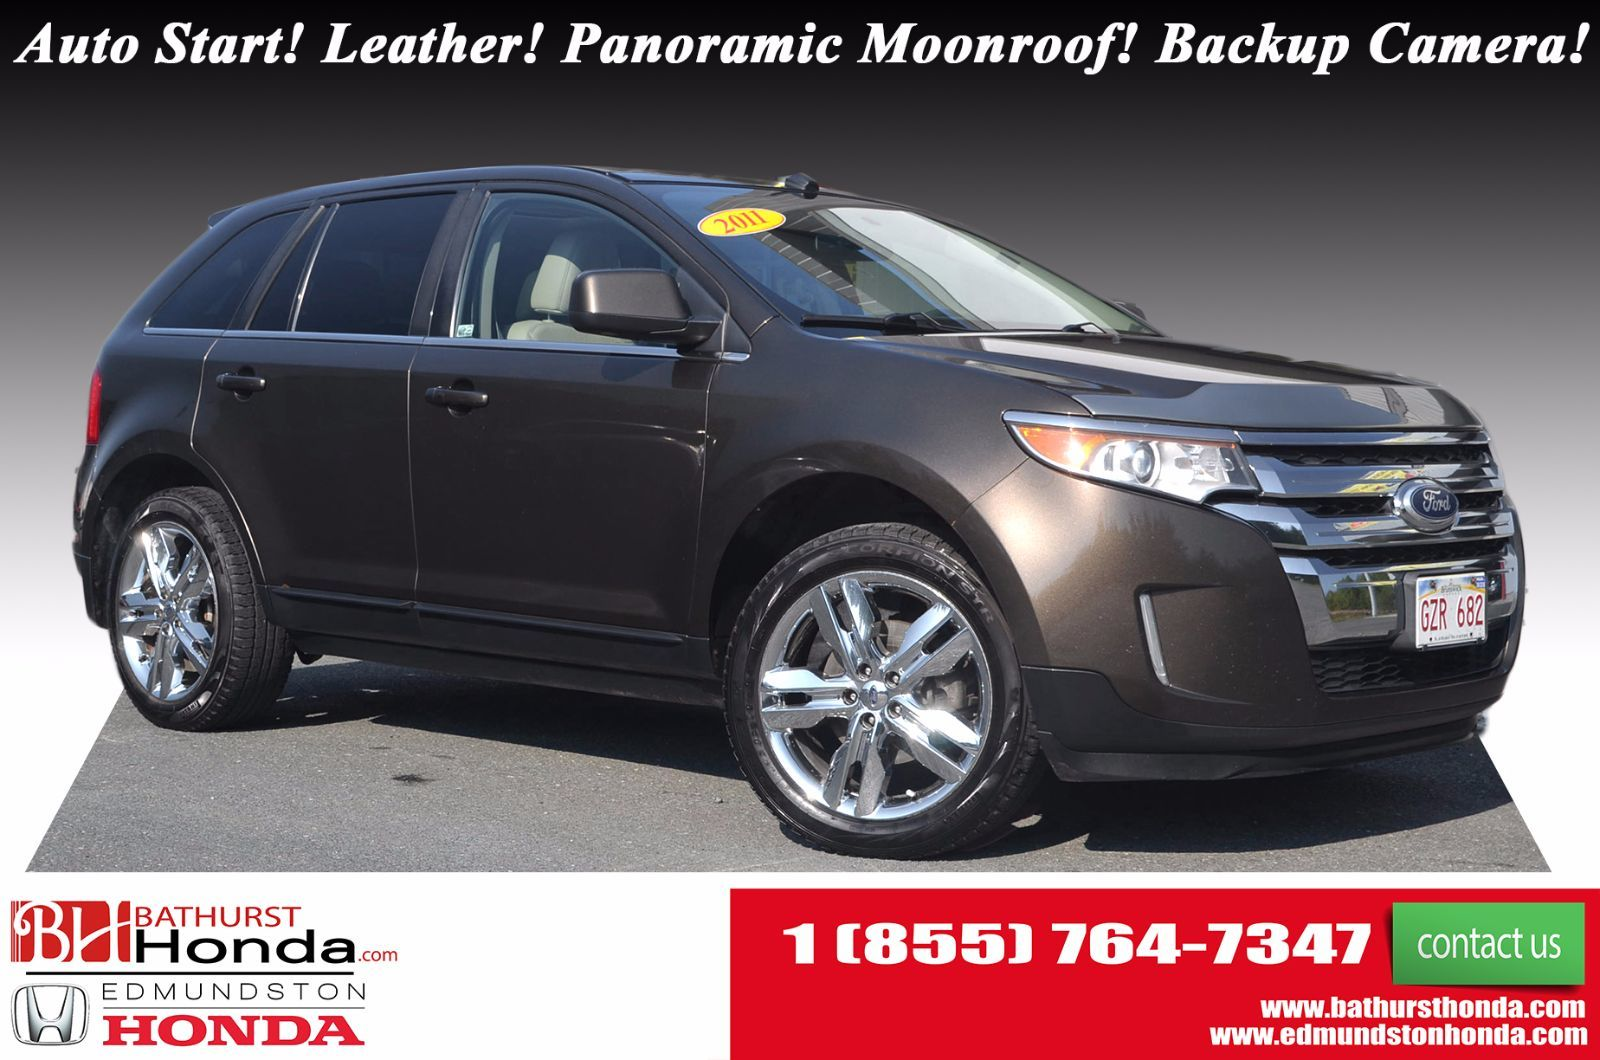 Ford Edge Limited Awd Auto Start Leather Panoramic Moonroof Backup Camera Heated Seats Used For Sale In Bathurst Bathurst Auto Credit